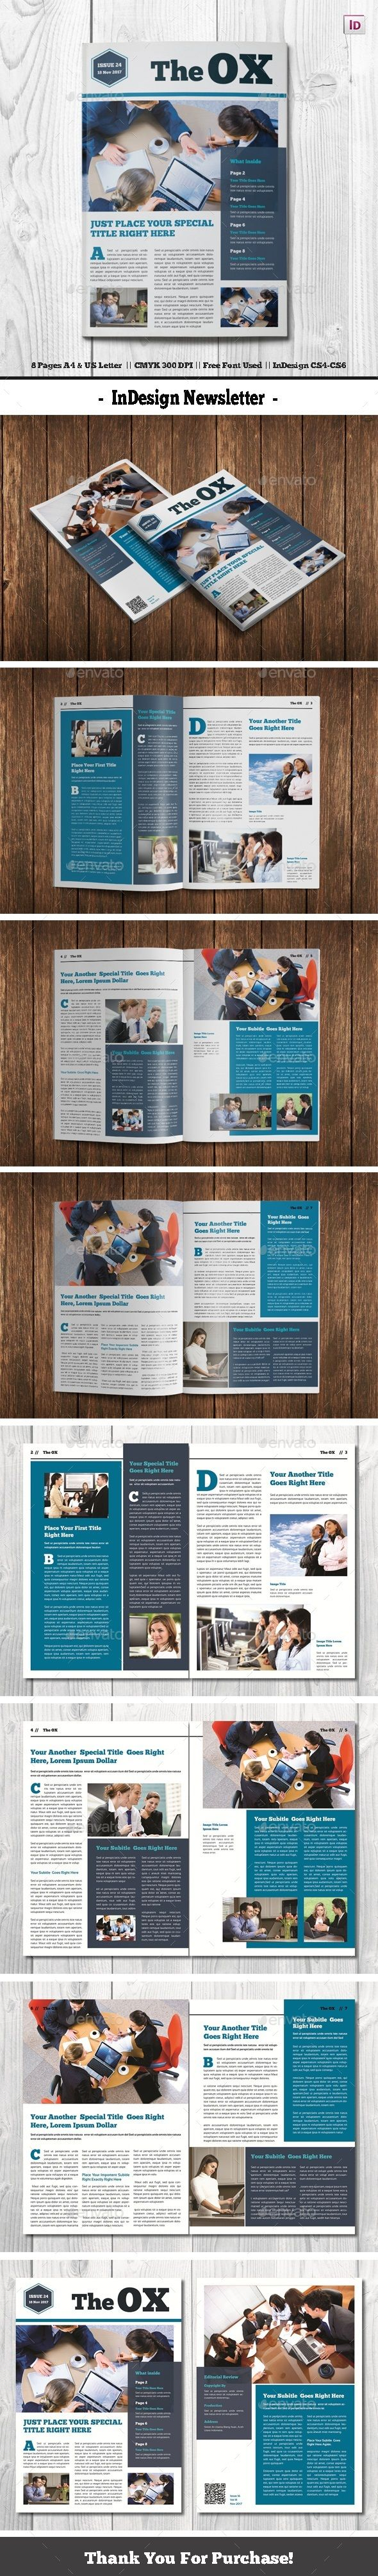 Indesign Newsletter Template Indesign Indd 8 Pages A4 Us Letter